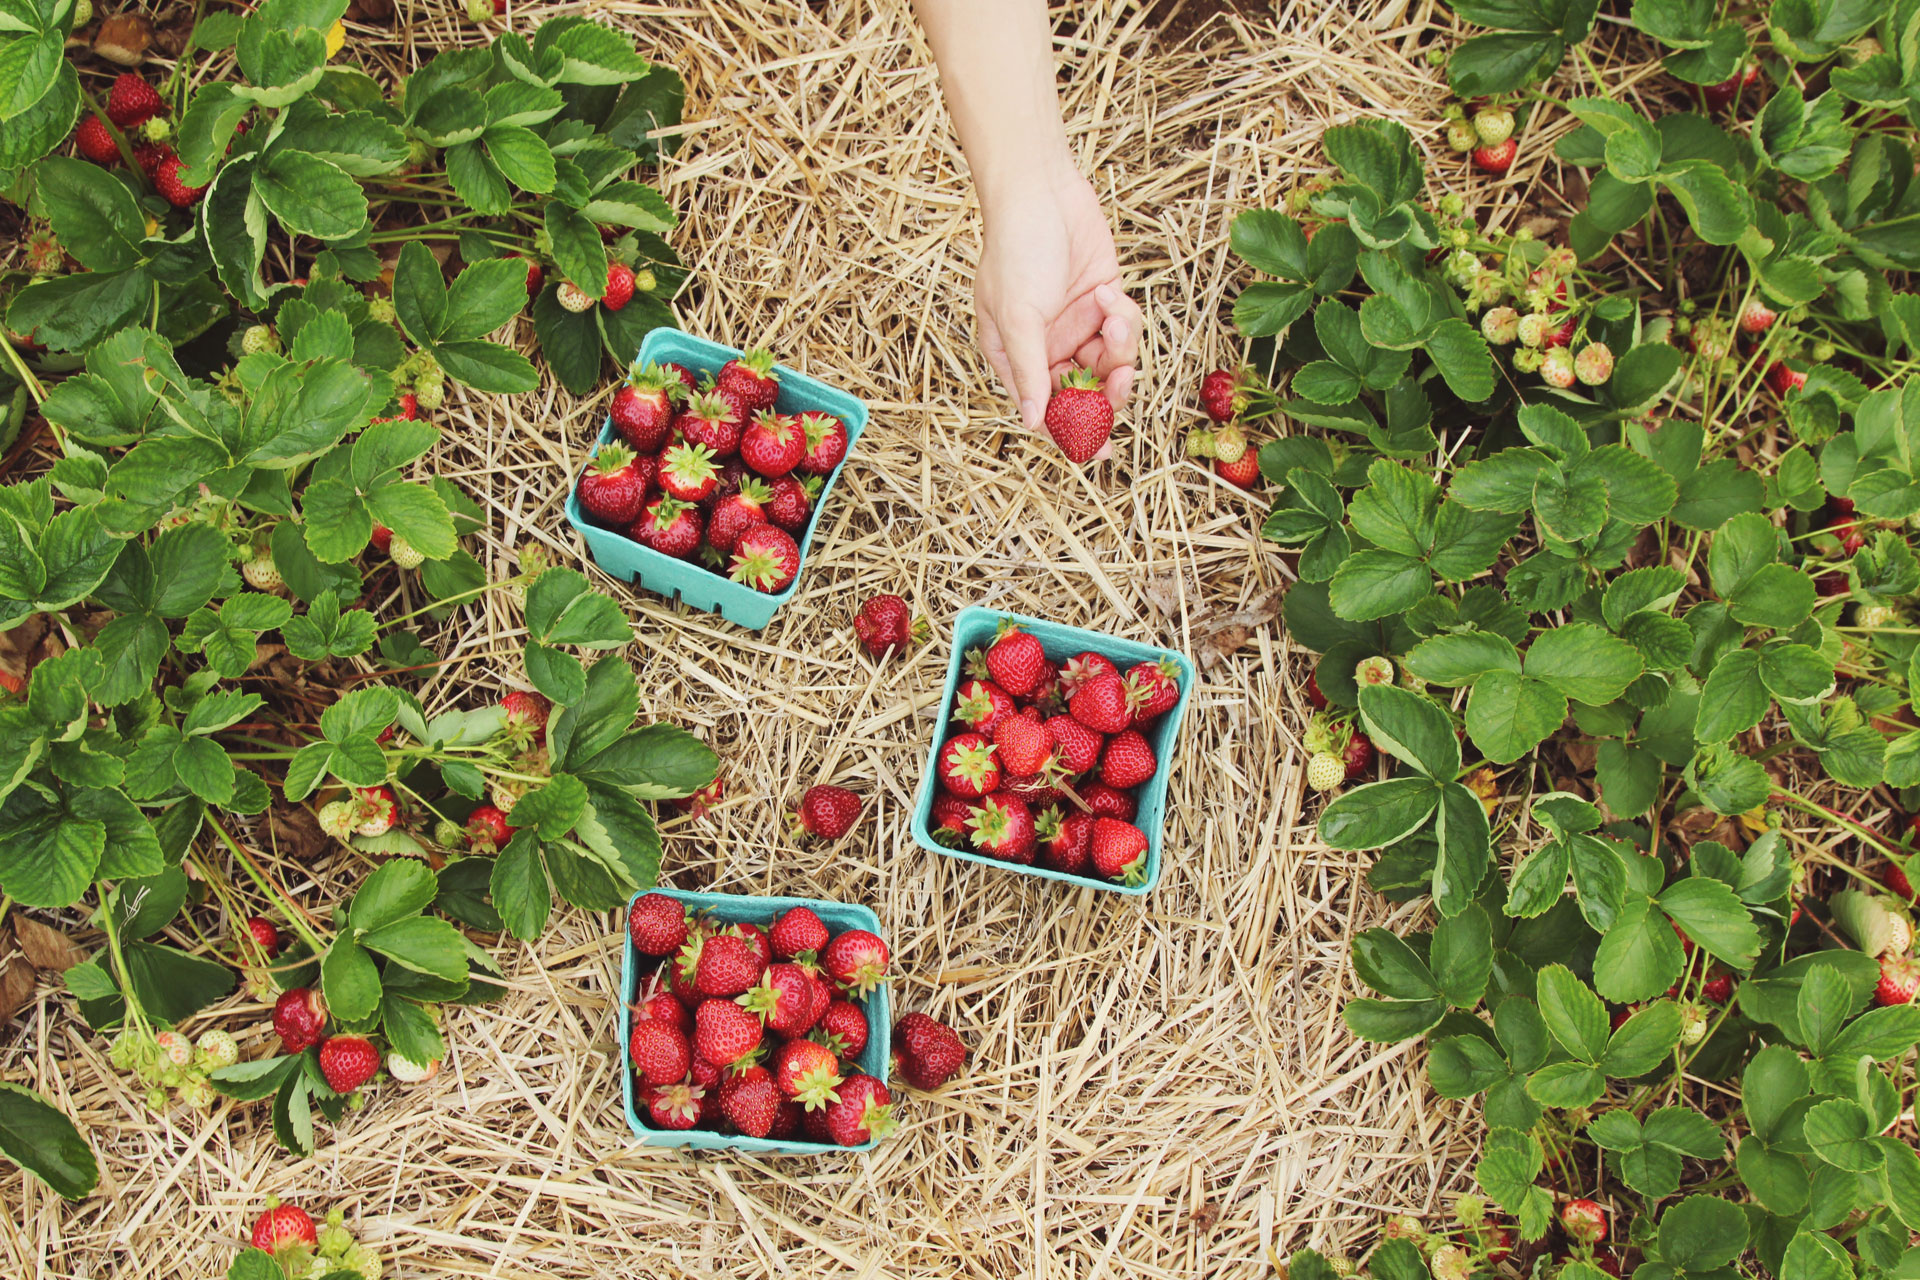 Summer Produce to Stock up on While It's in Season